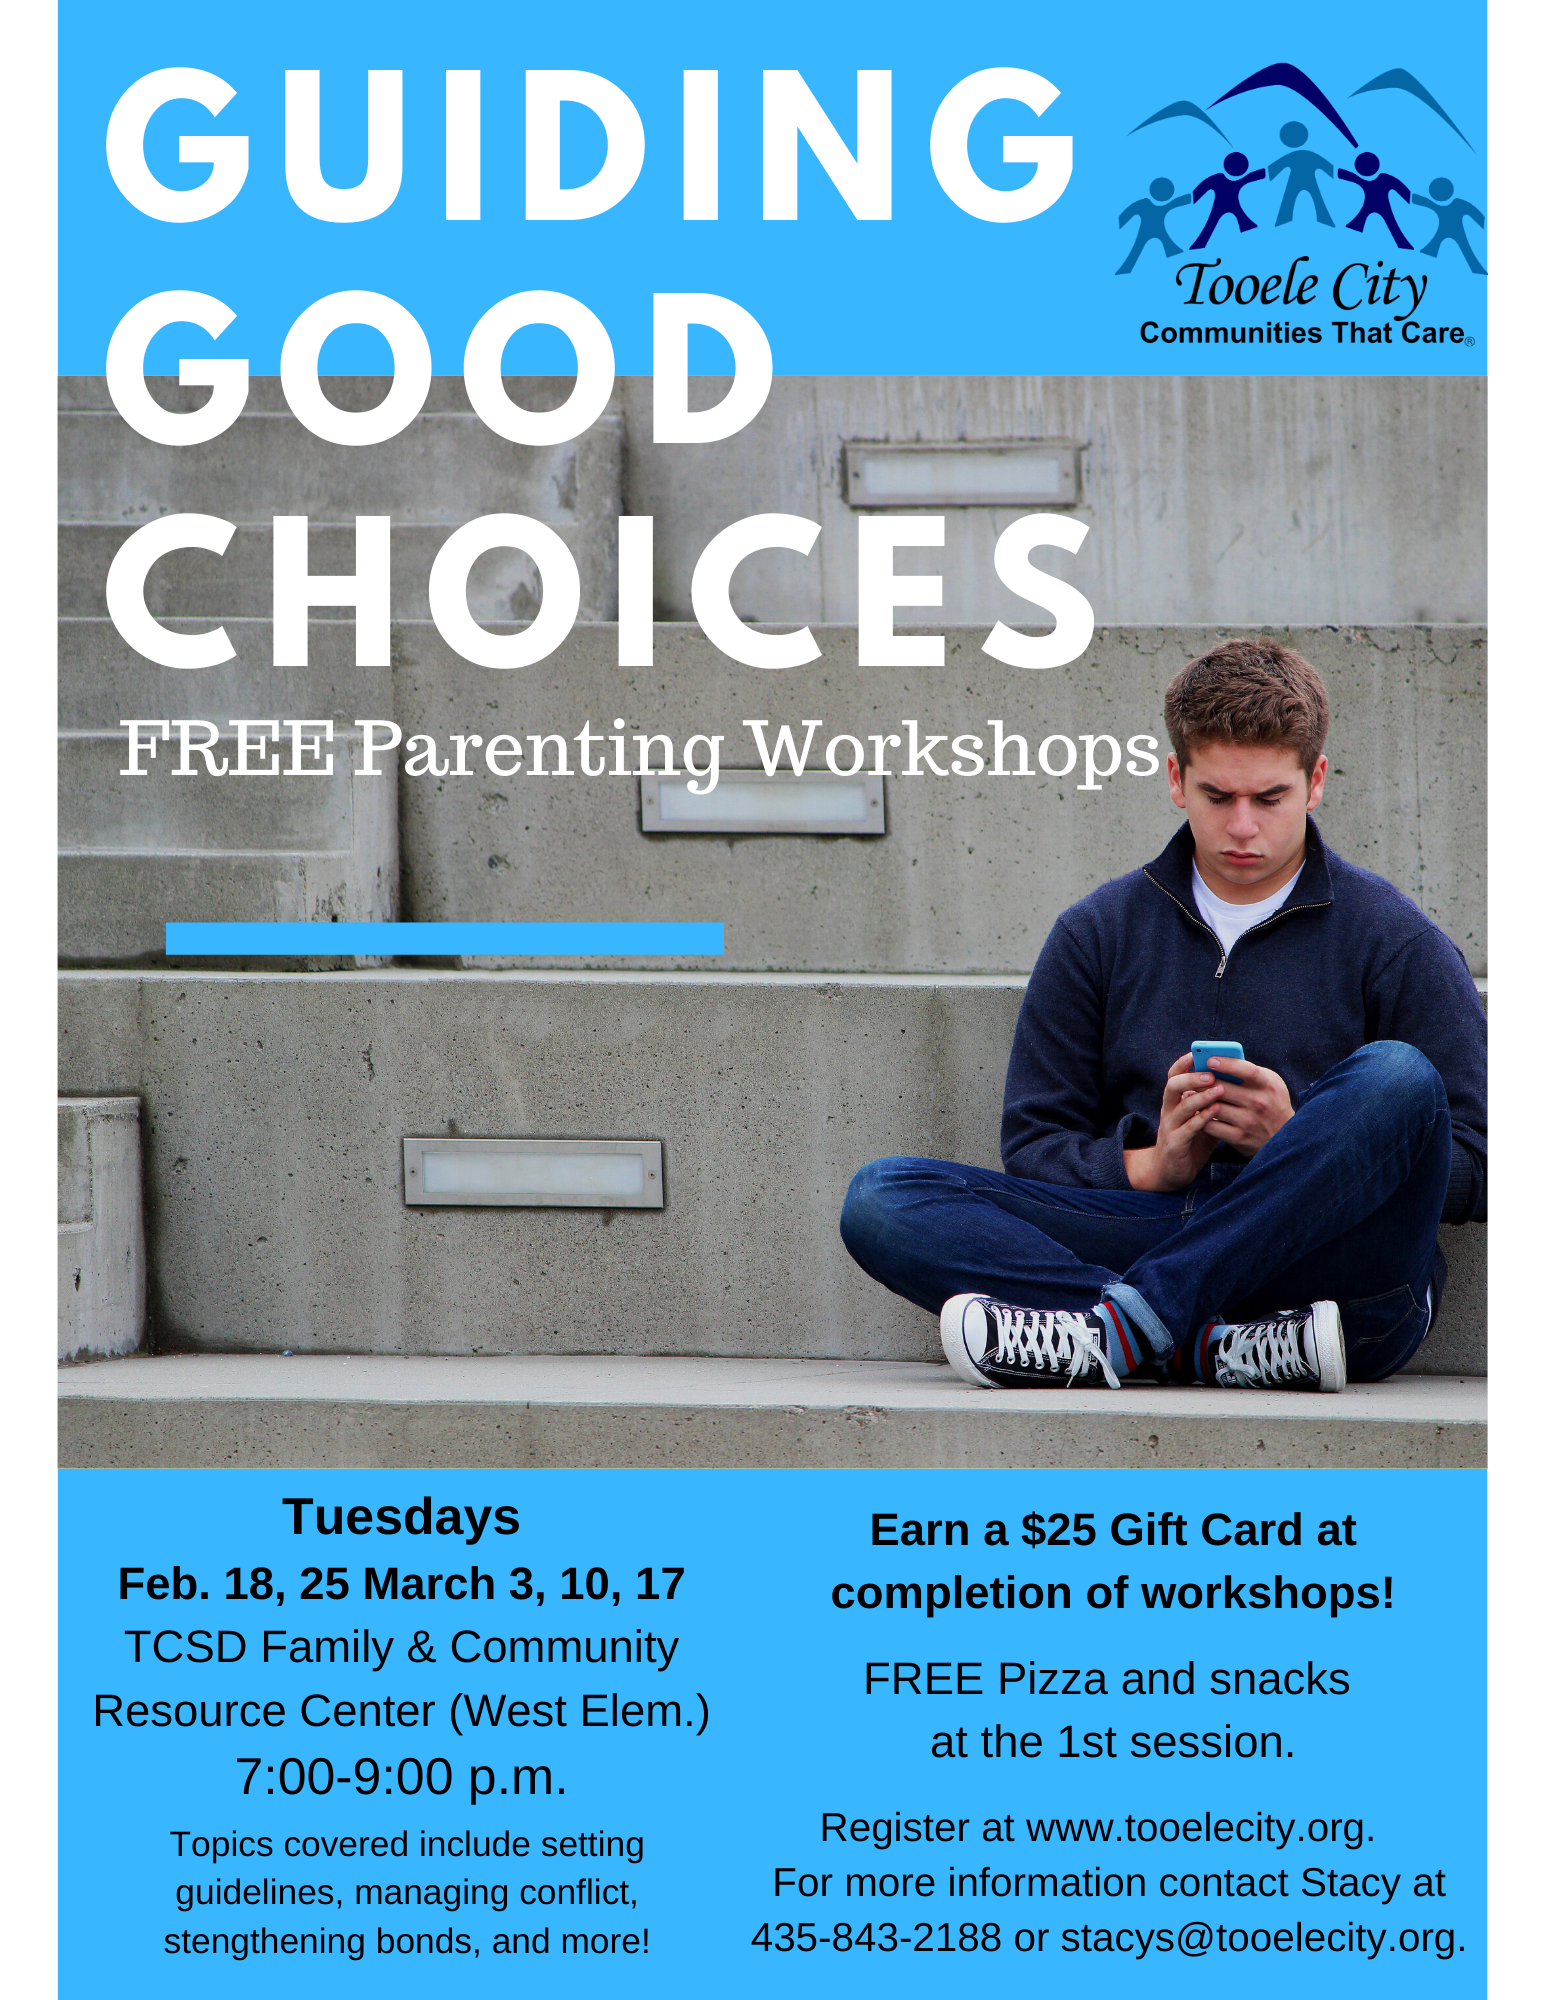 Guiding Good Choices FREE Parenting & Family Workshops (Tuesday Nights) @ TCSD Family & Community Resource Center (West Elementary) | Tooele | Utah | United States